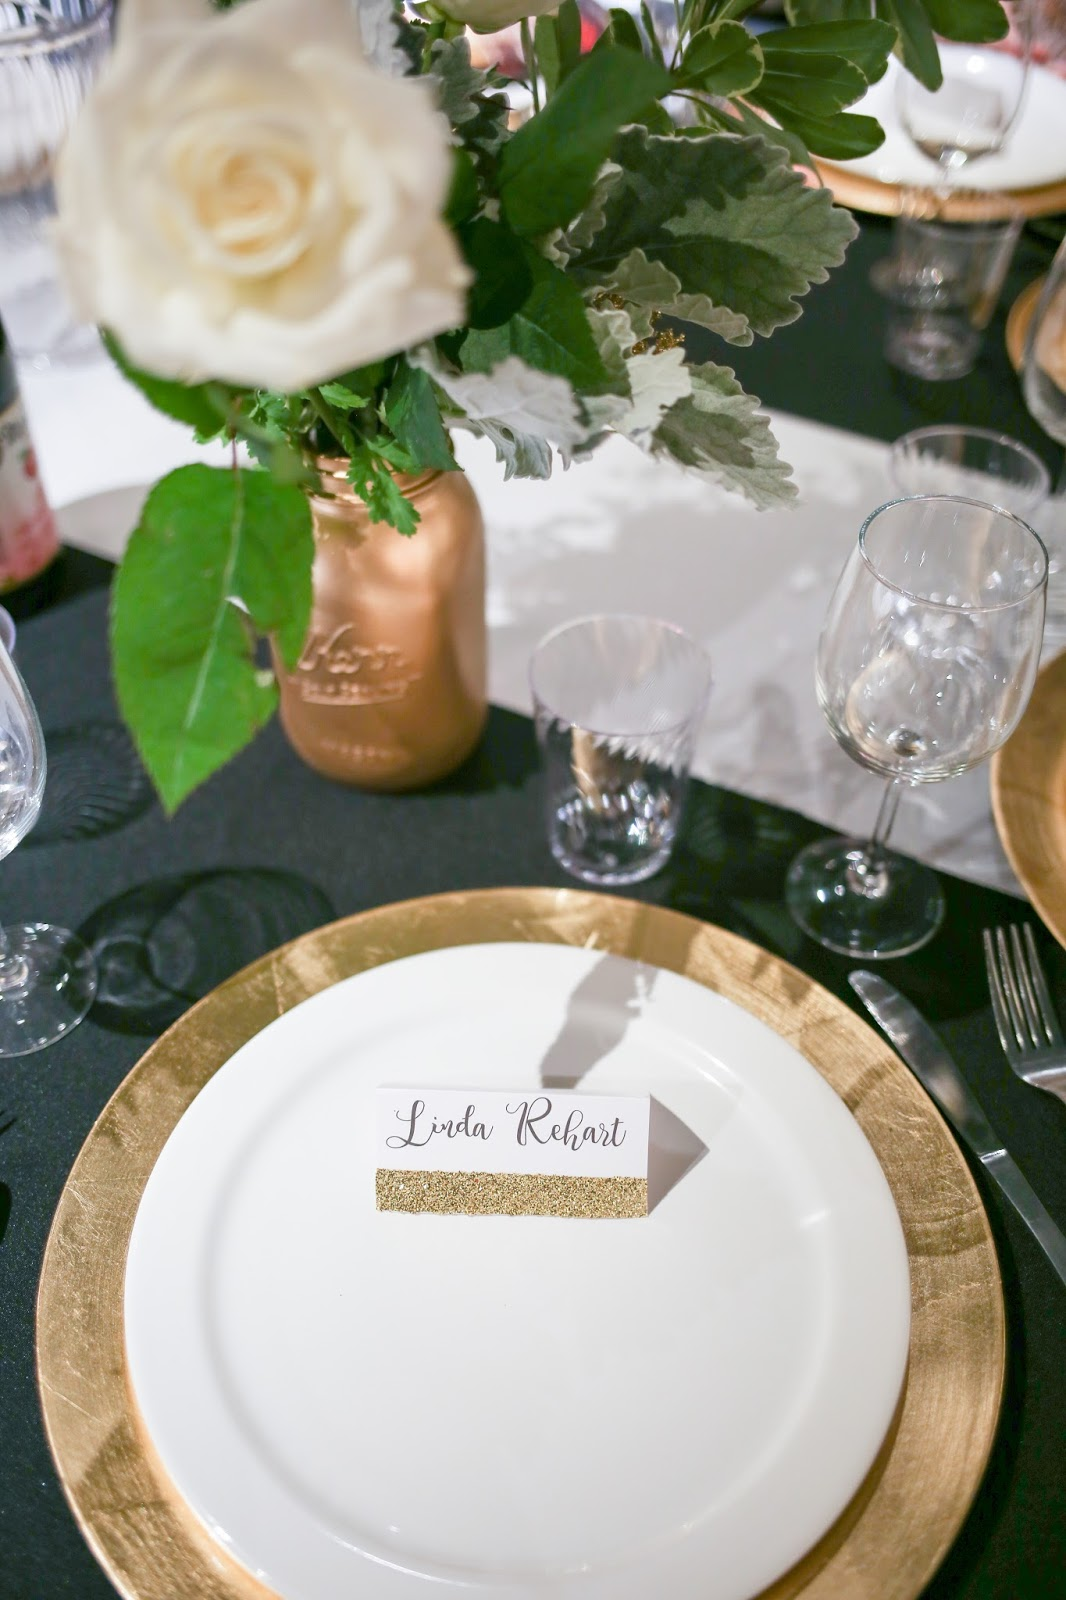 I Had So Much Fun Making These Place Cards For All The Guests I Love How  The Gold Accented With The Black And White 007 Spylike Decor